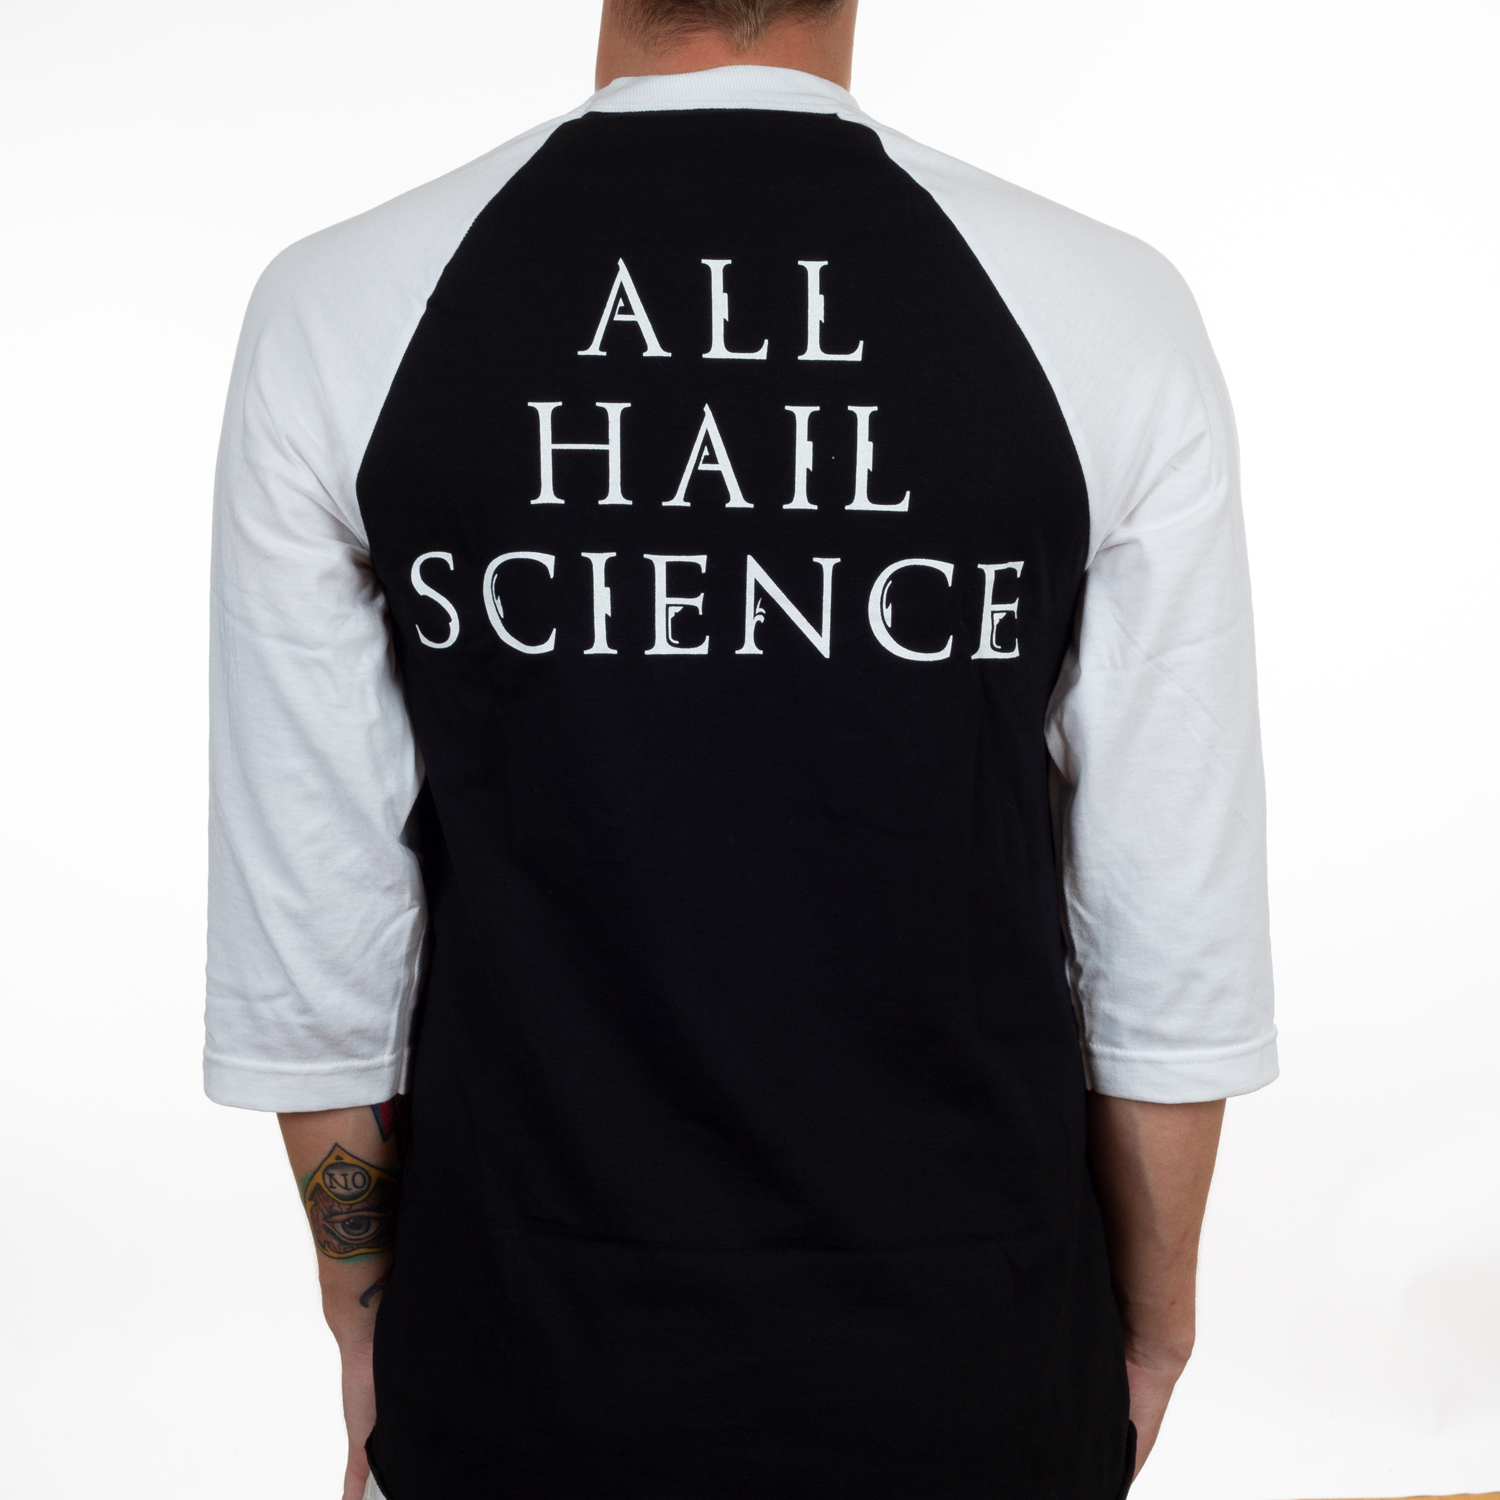 All Hail Science